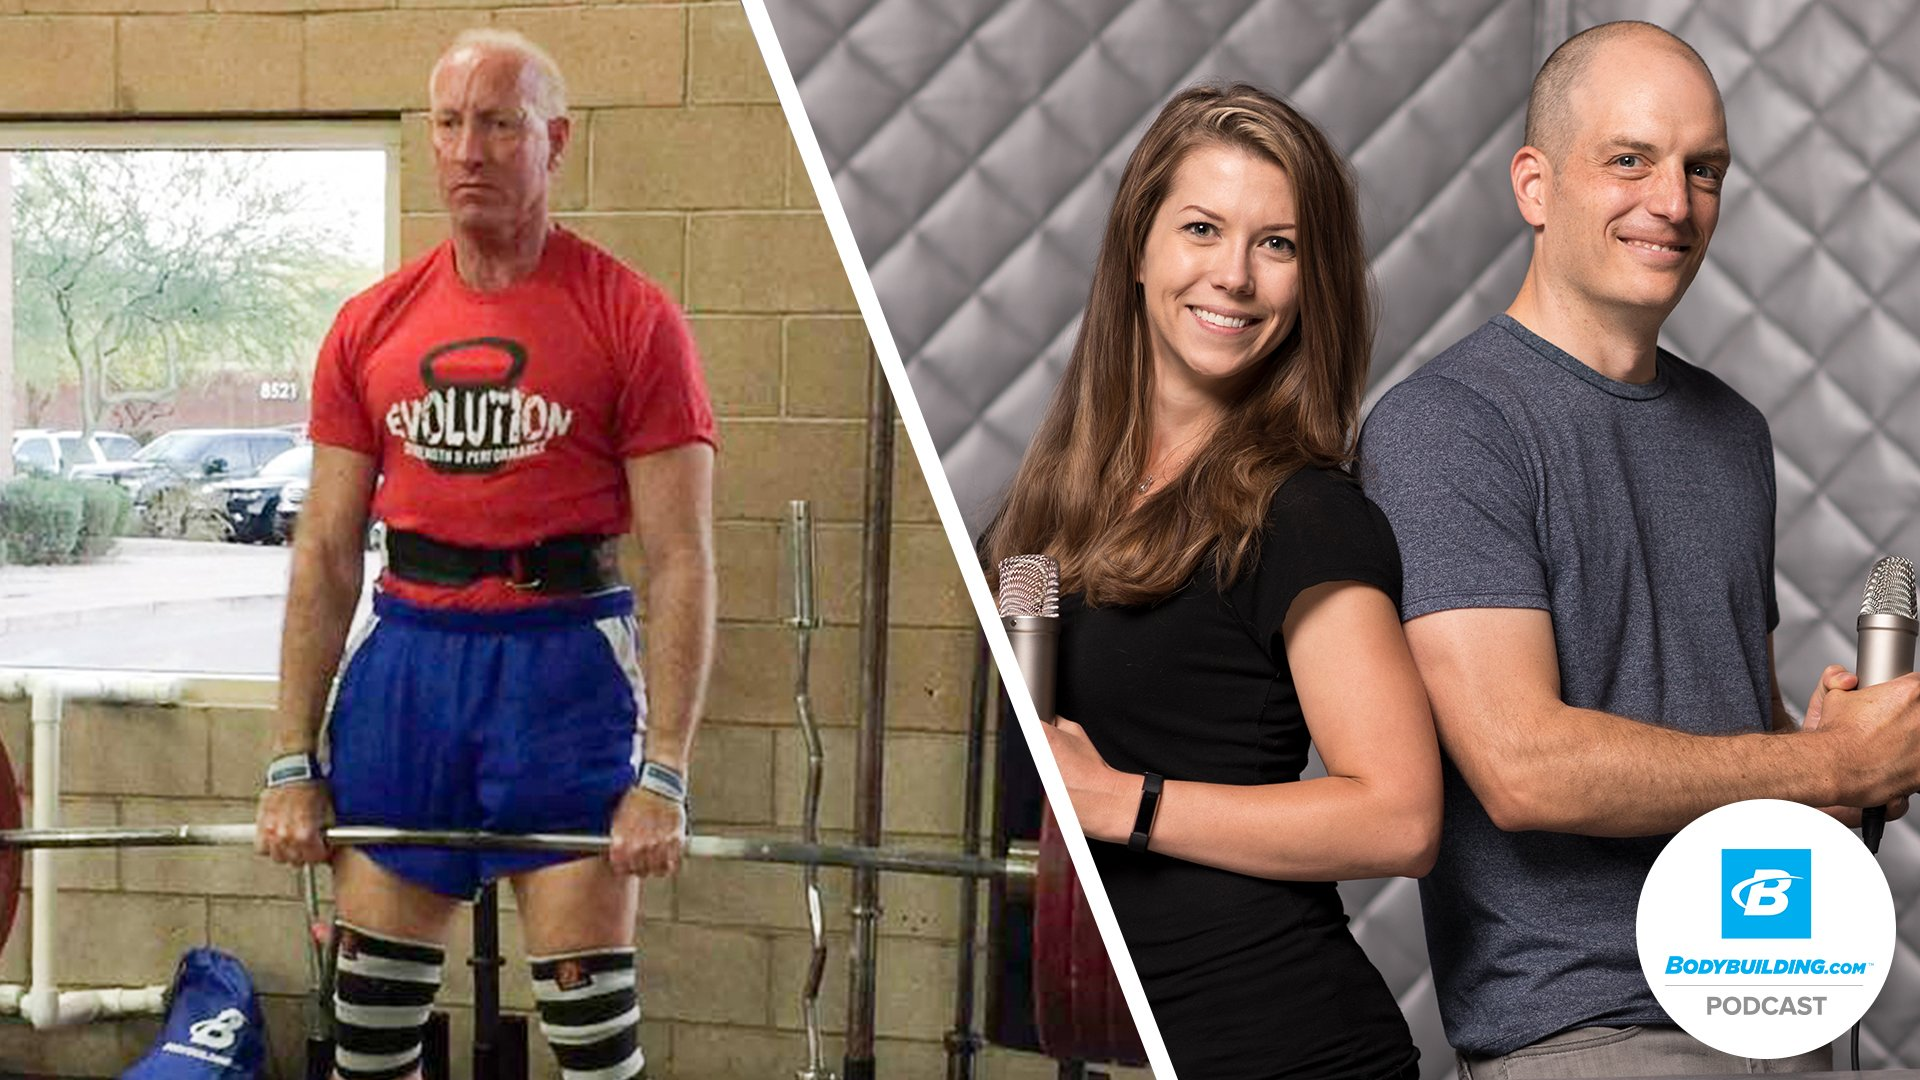 Podcast episode 23 charles staley how to lift to stay strong and healthy at